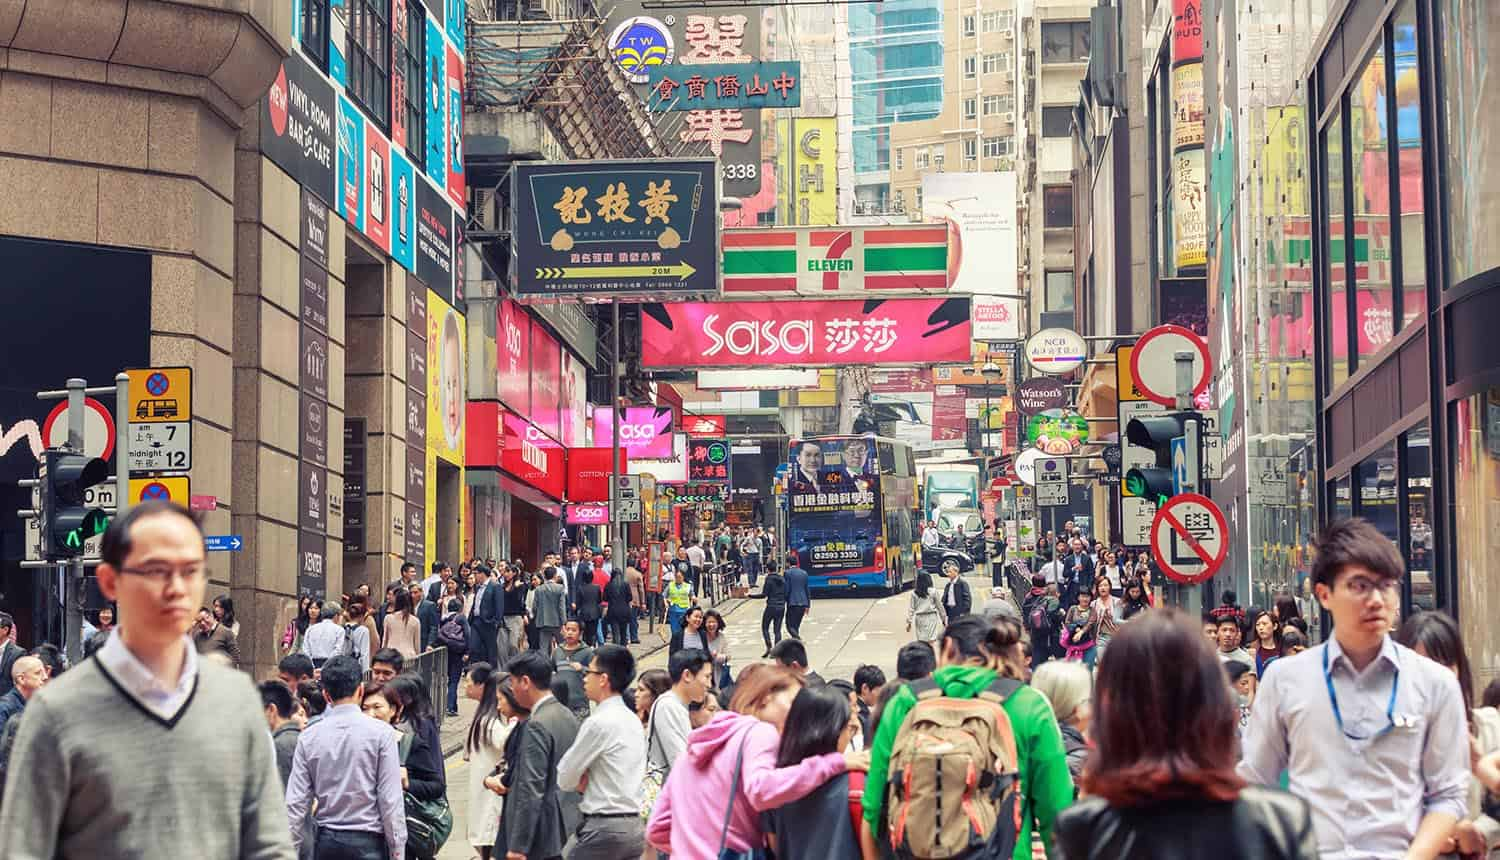 View of a crowded Hong Kong street showing the relationship between employment agency and data protection laws in Hong Kong